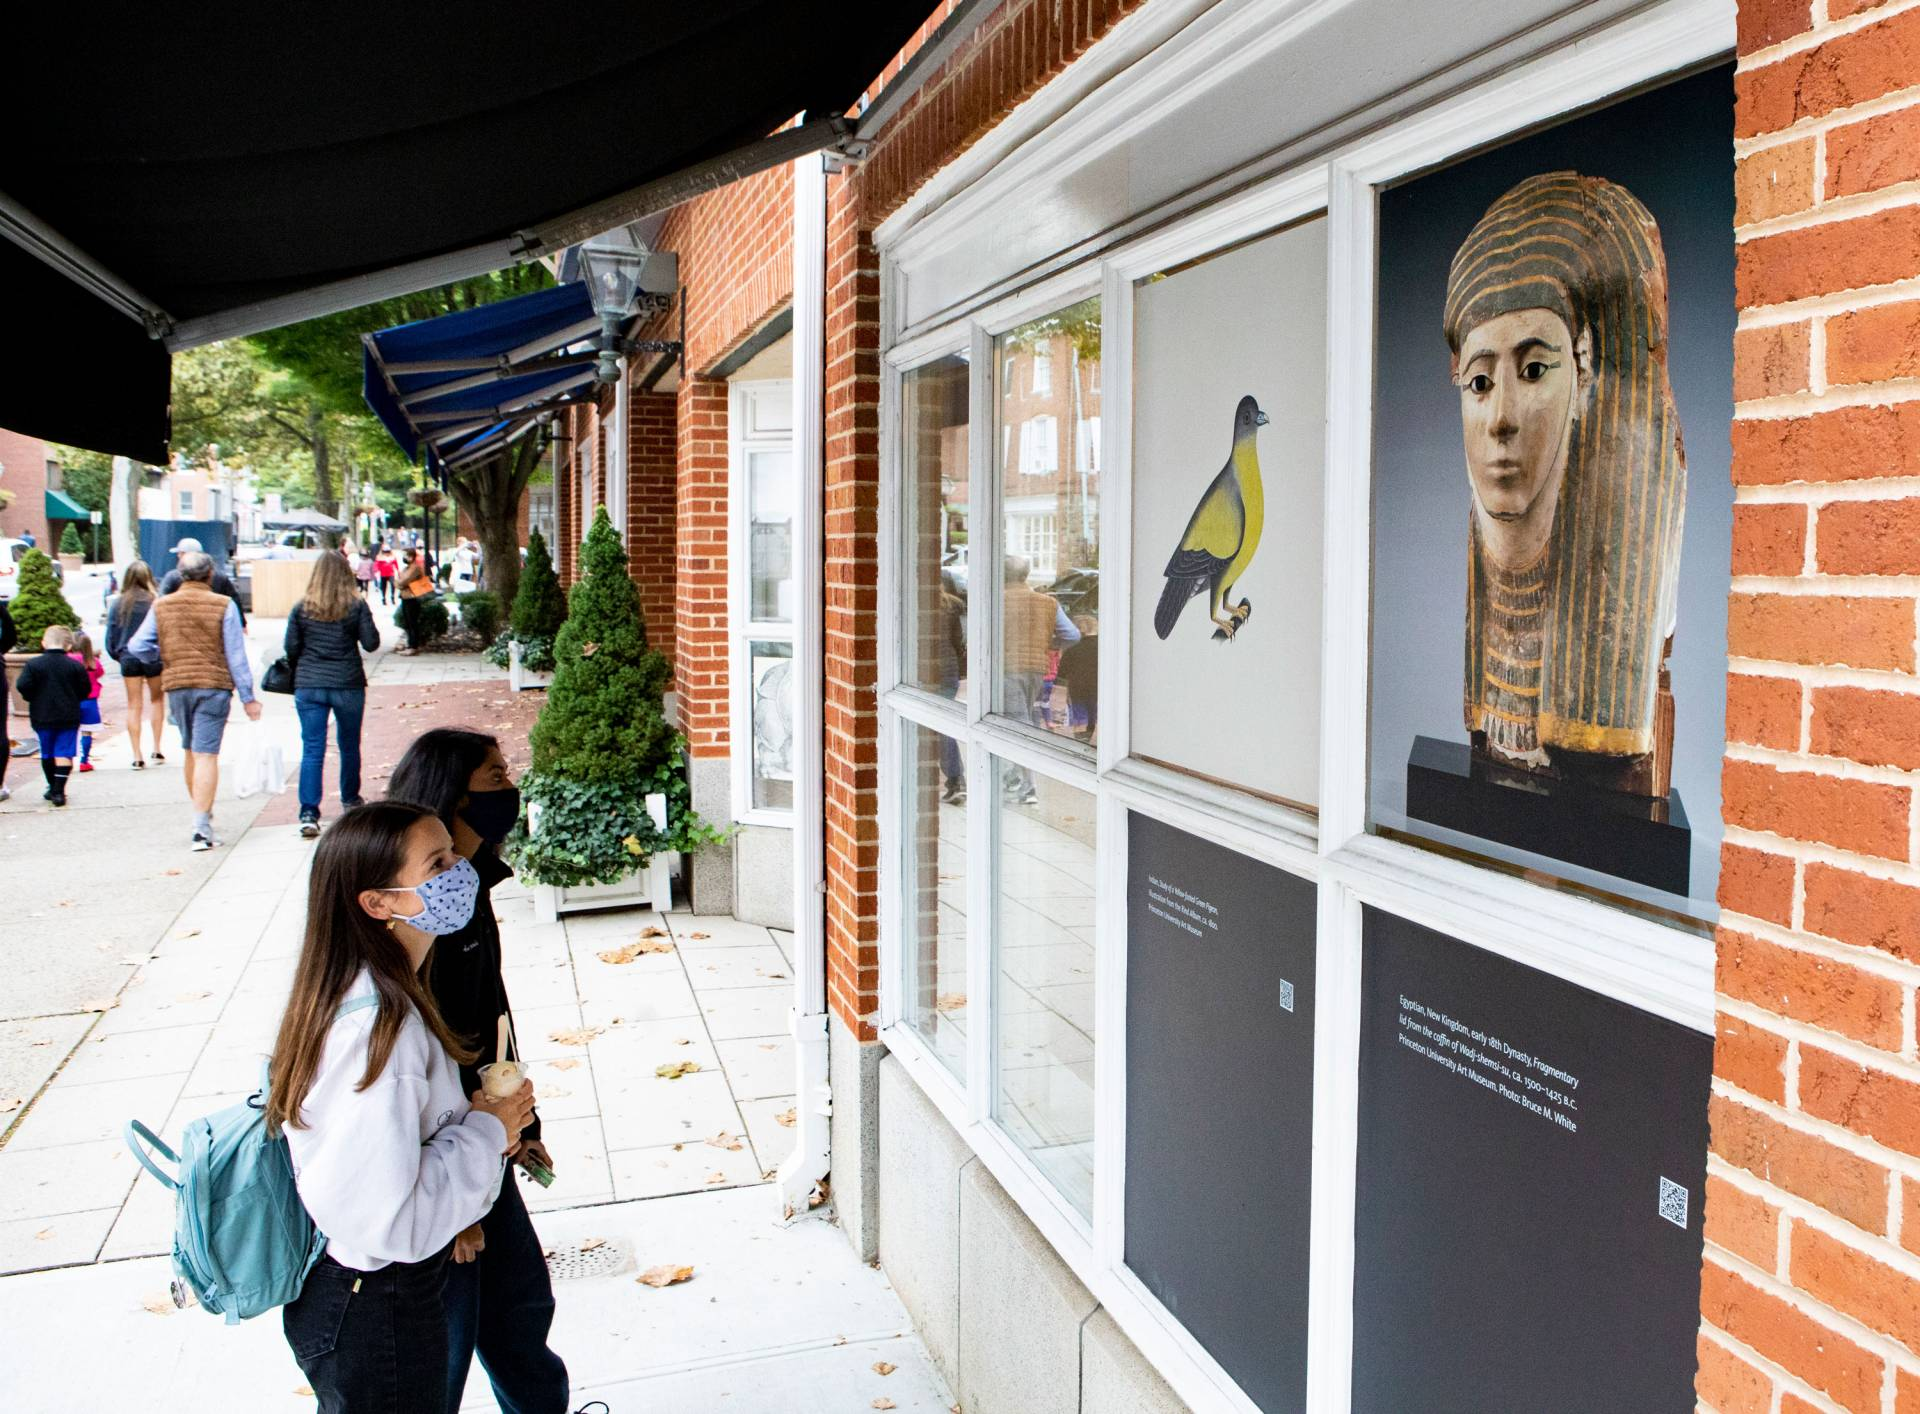 passers-by stop to look at art in shop windows